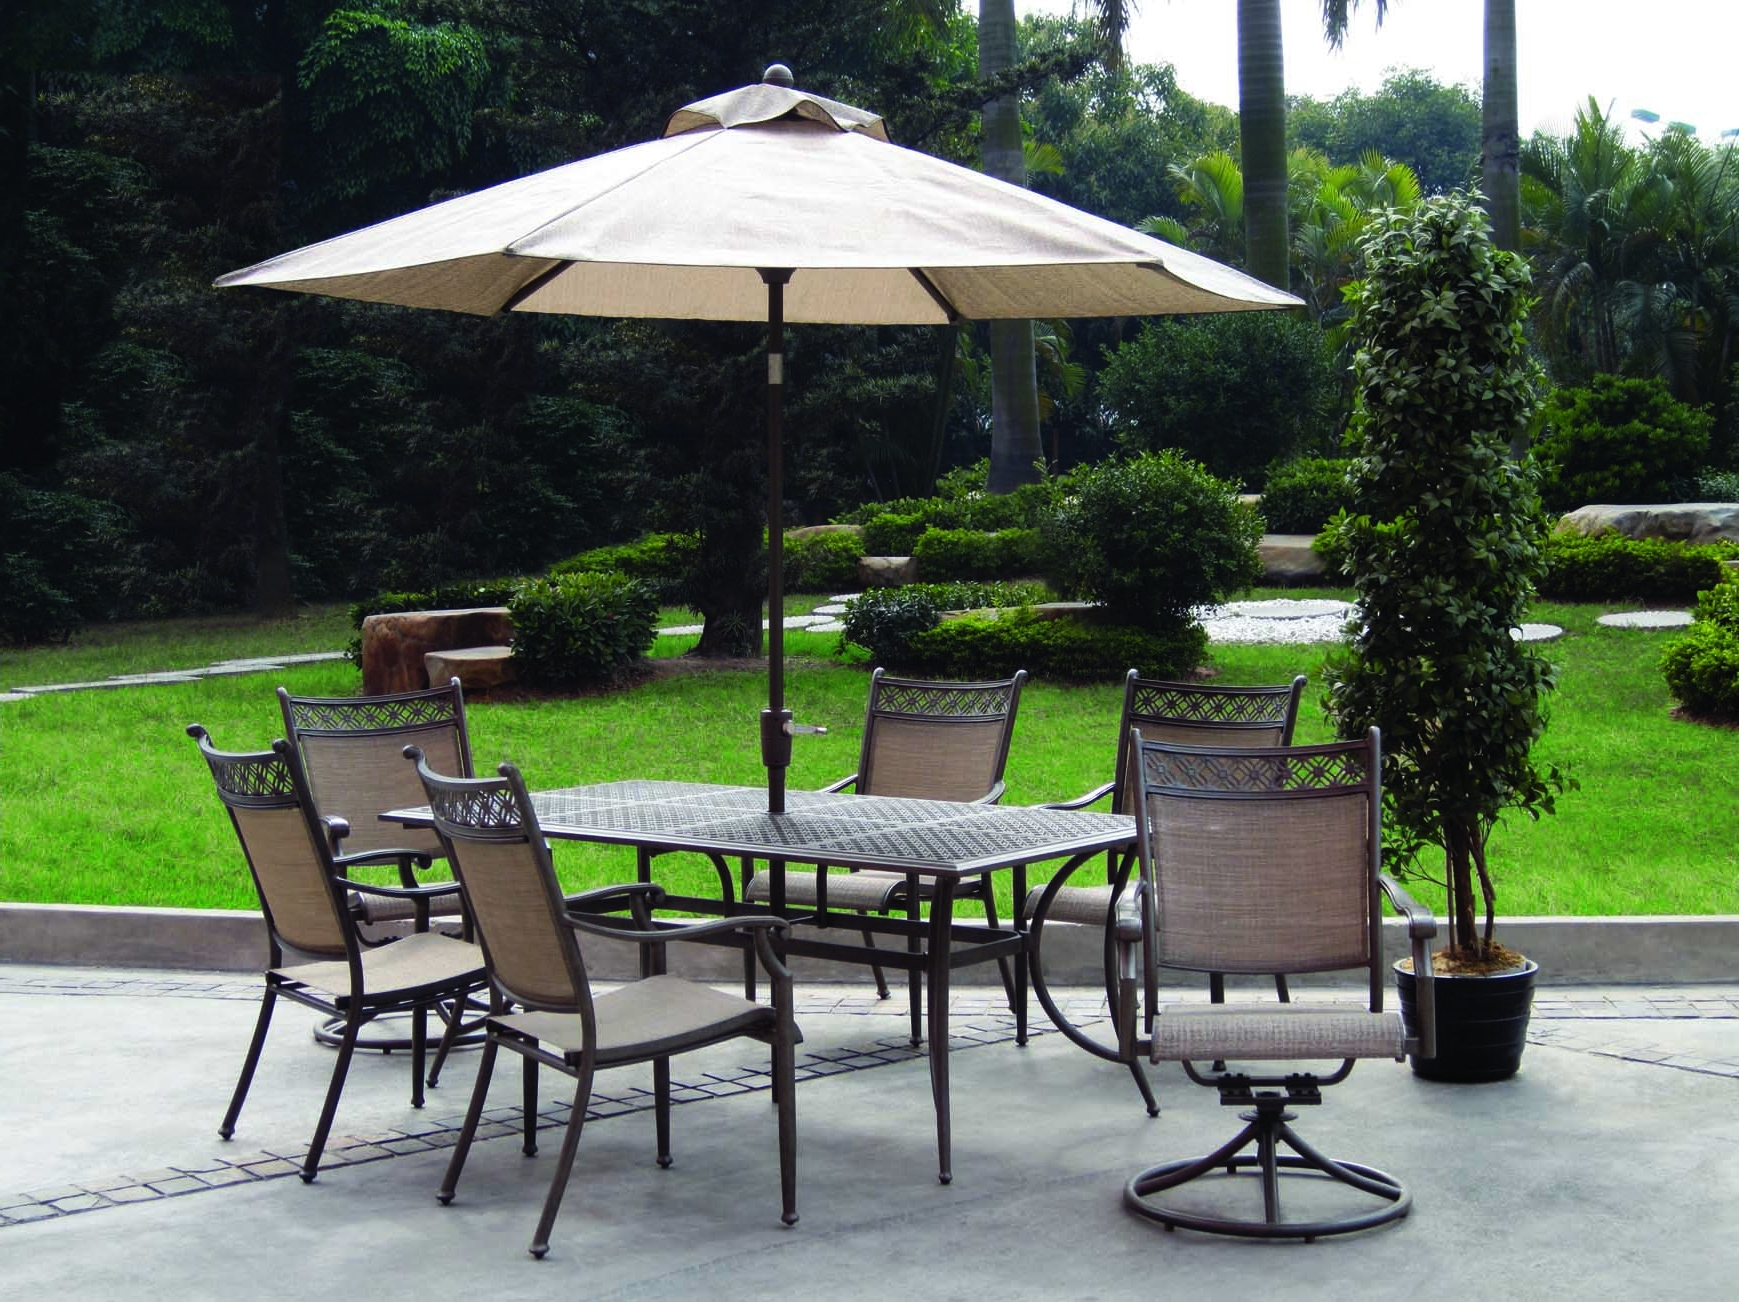 Fashionable Patio Table And Chairs With Umbrellas Within Home Depot Outdoor Furniture Umbrellas With 2 Swivel Chair Pine (Gallery 2 of 20)